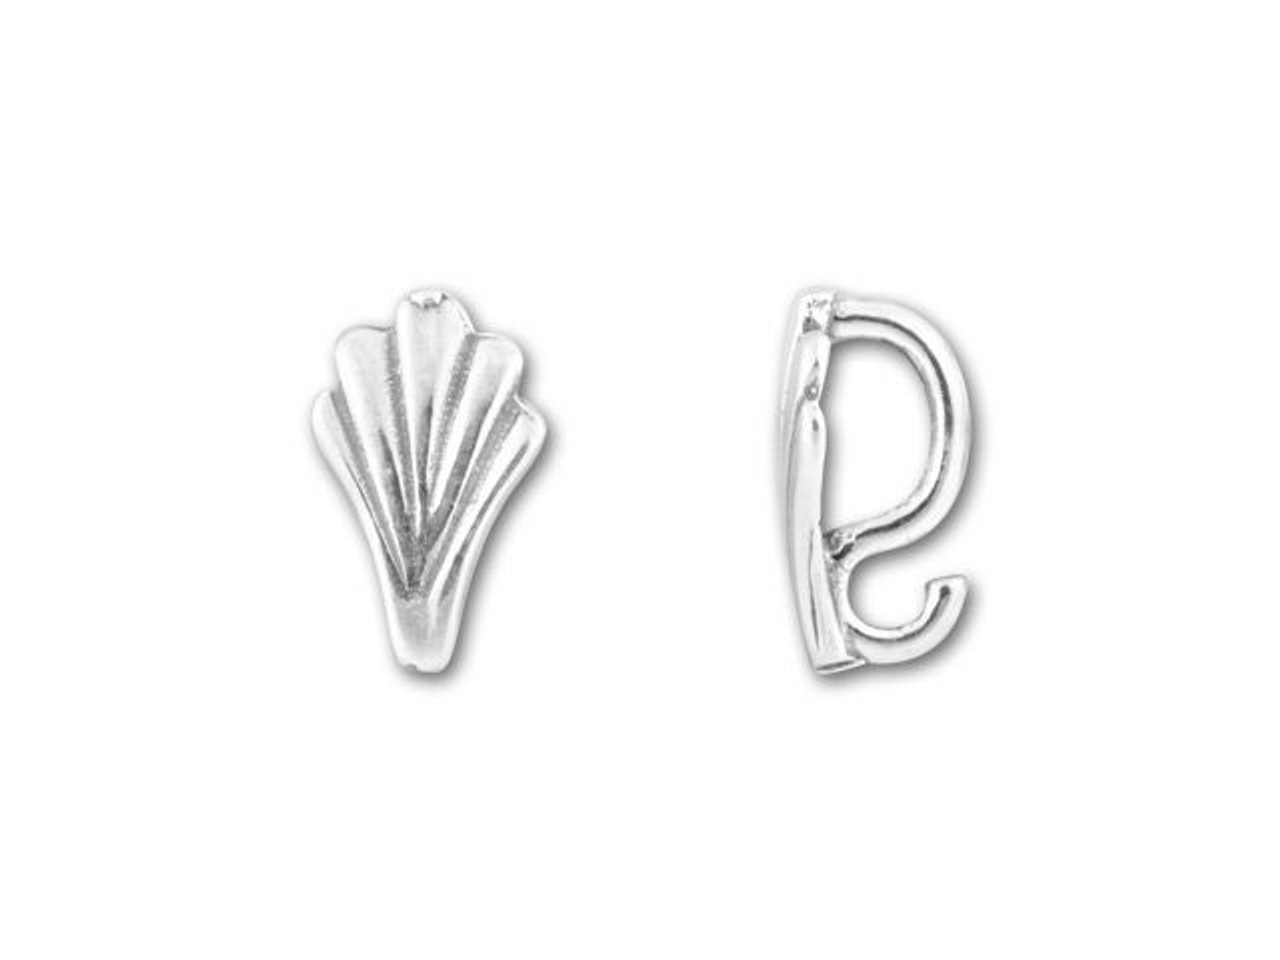 Sterling Silver 925  Grooved Pendant  Bail with Open Jump Ring  Jewellery Making